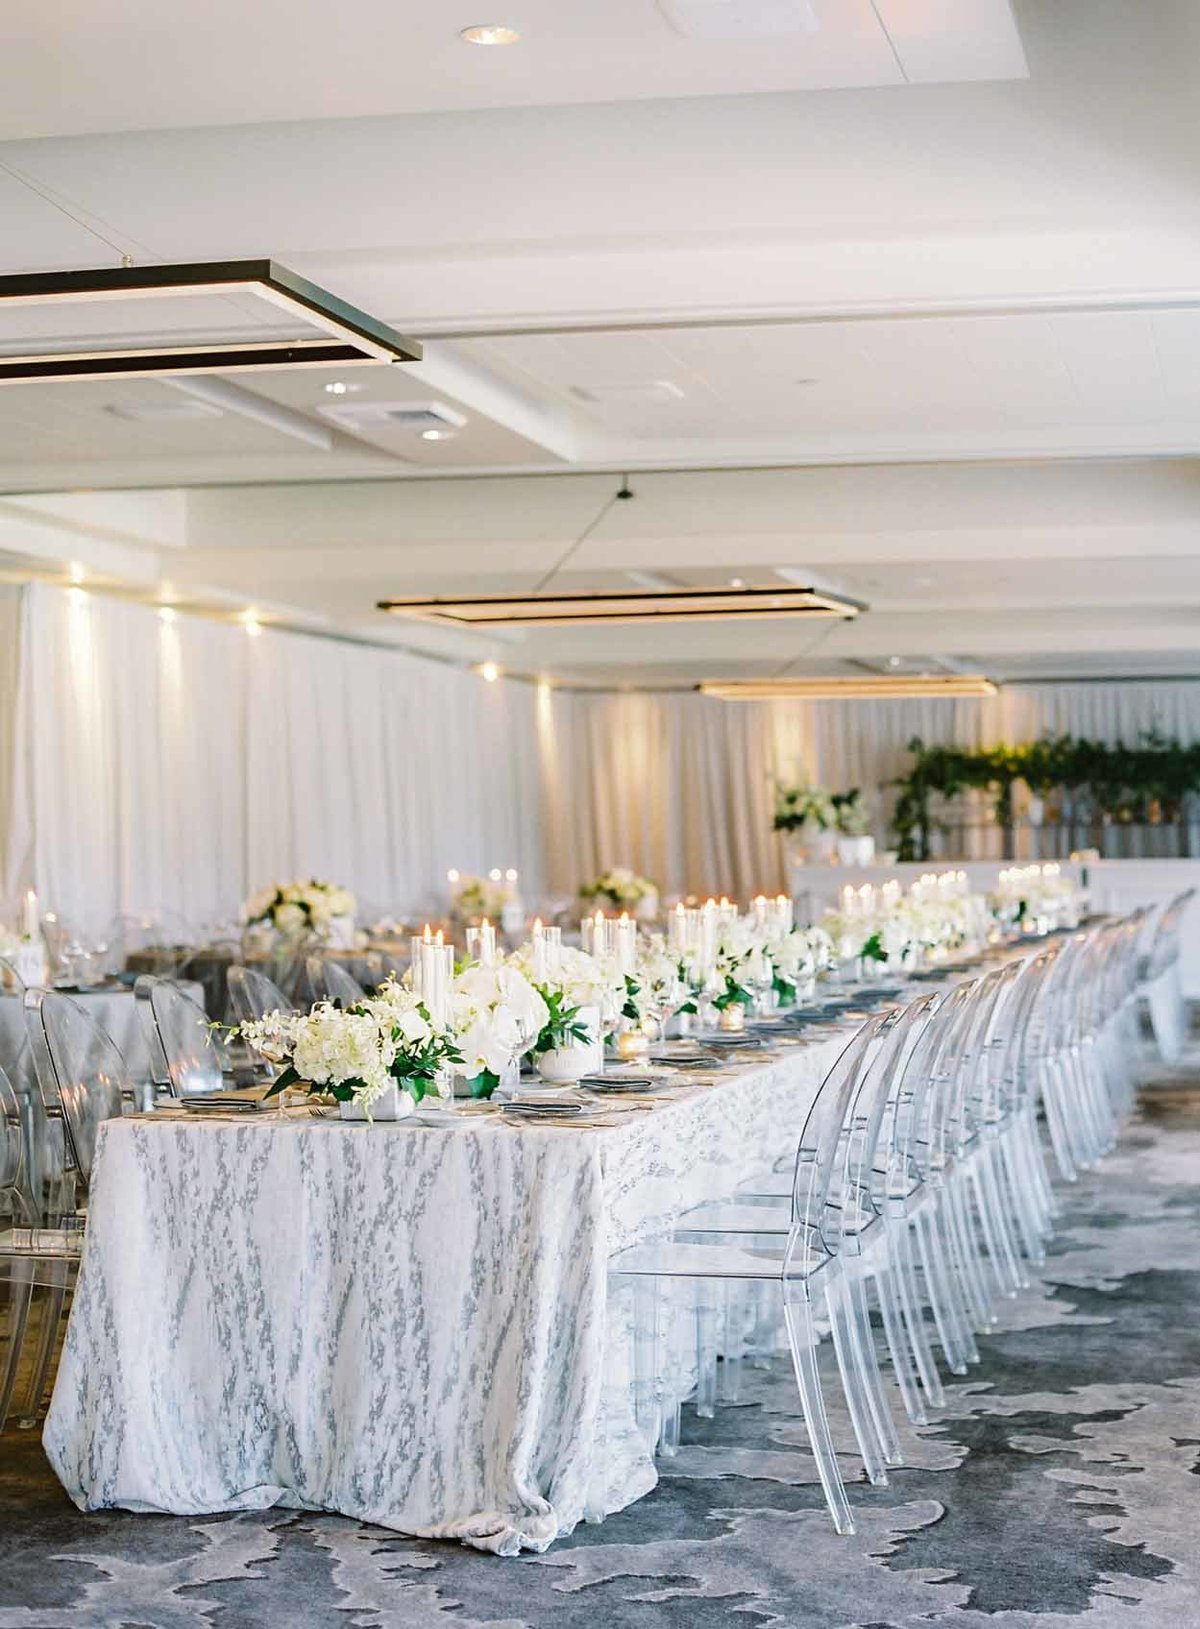 Beautiful grey and white wedding designed by Flora Nova Design Seattle at Overlake Golf and Country Club